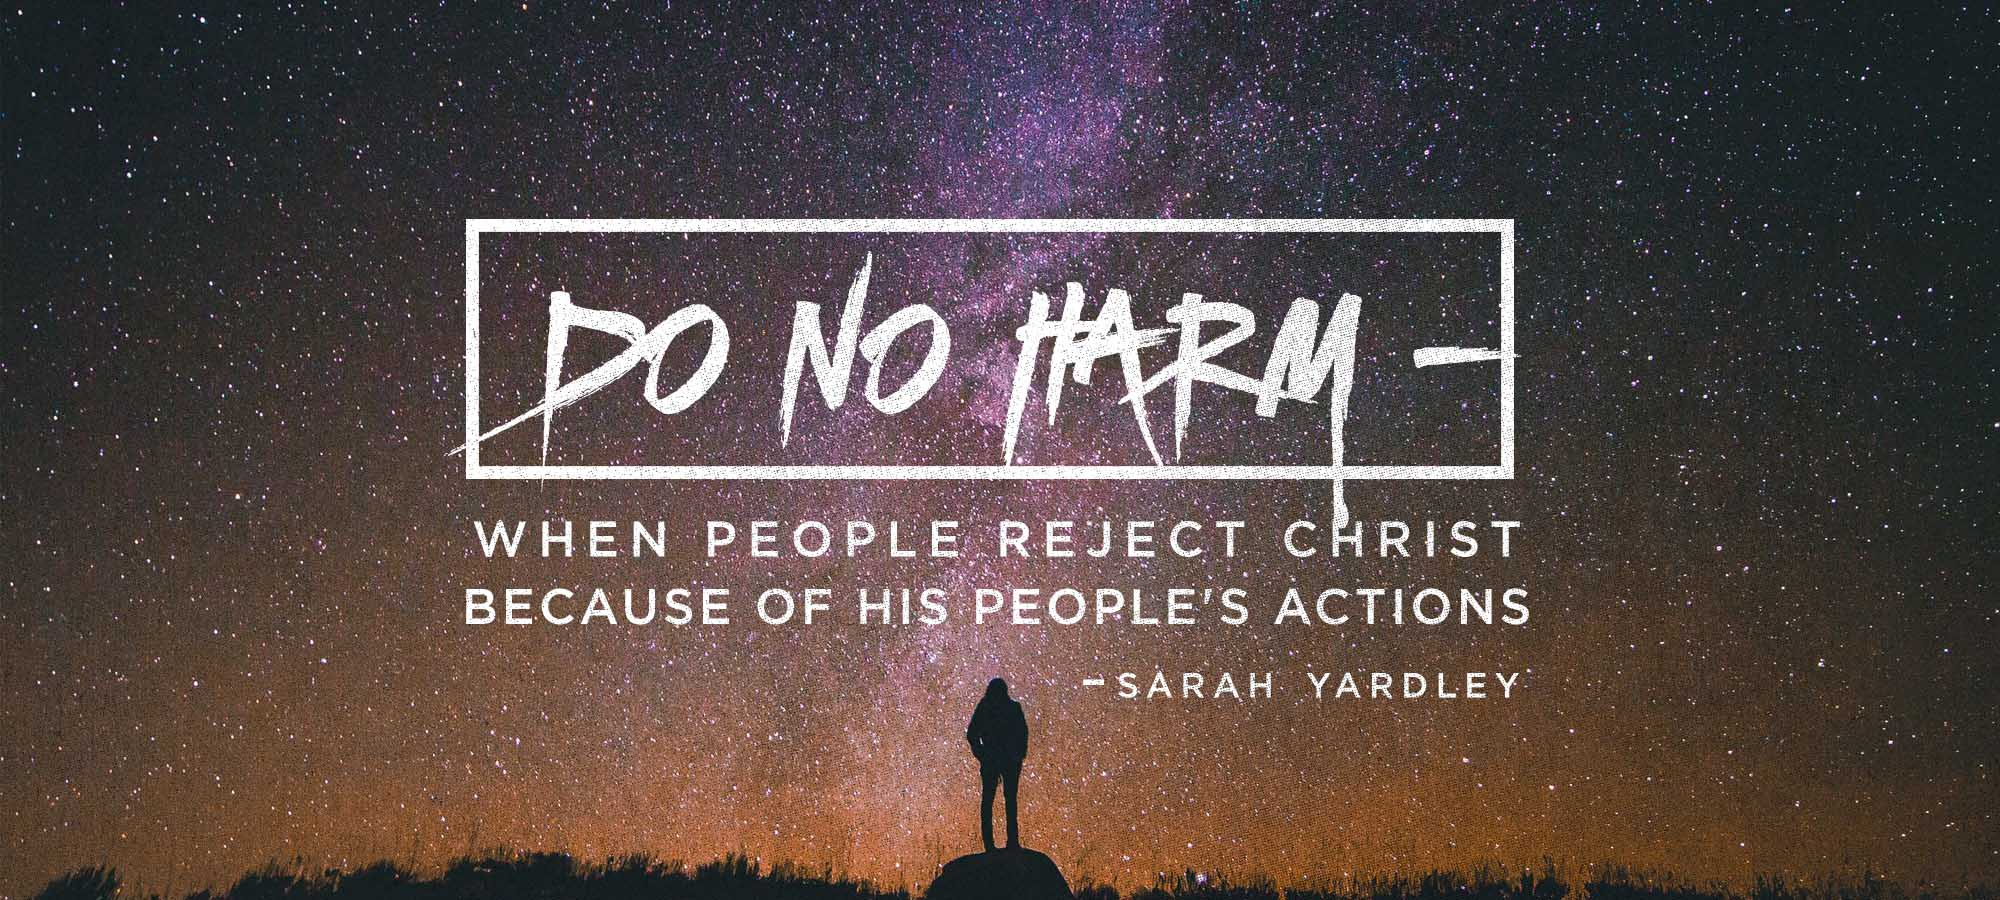 Do No Harm - When People Reject Christ because of His People's Actions